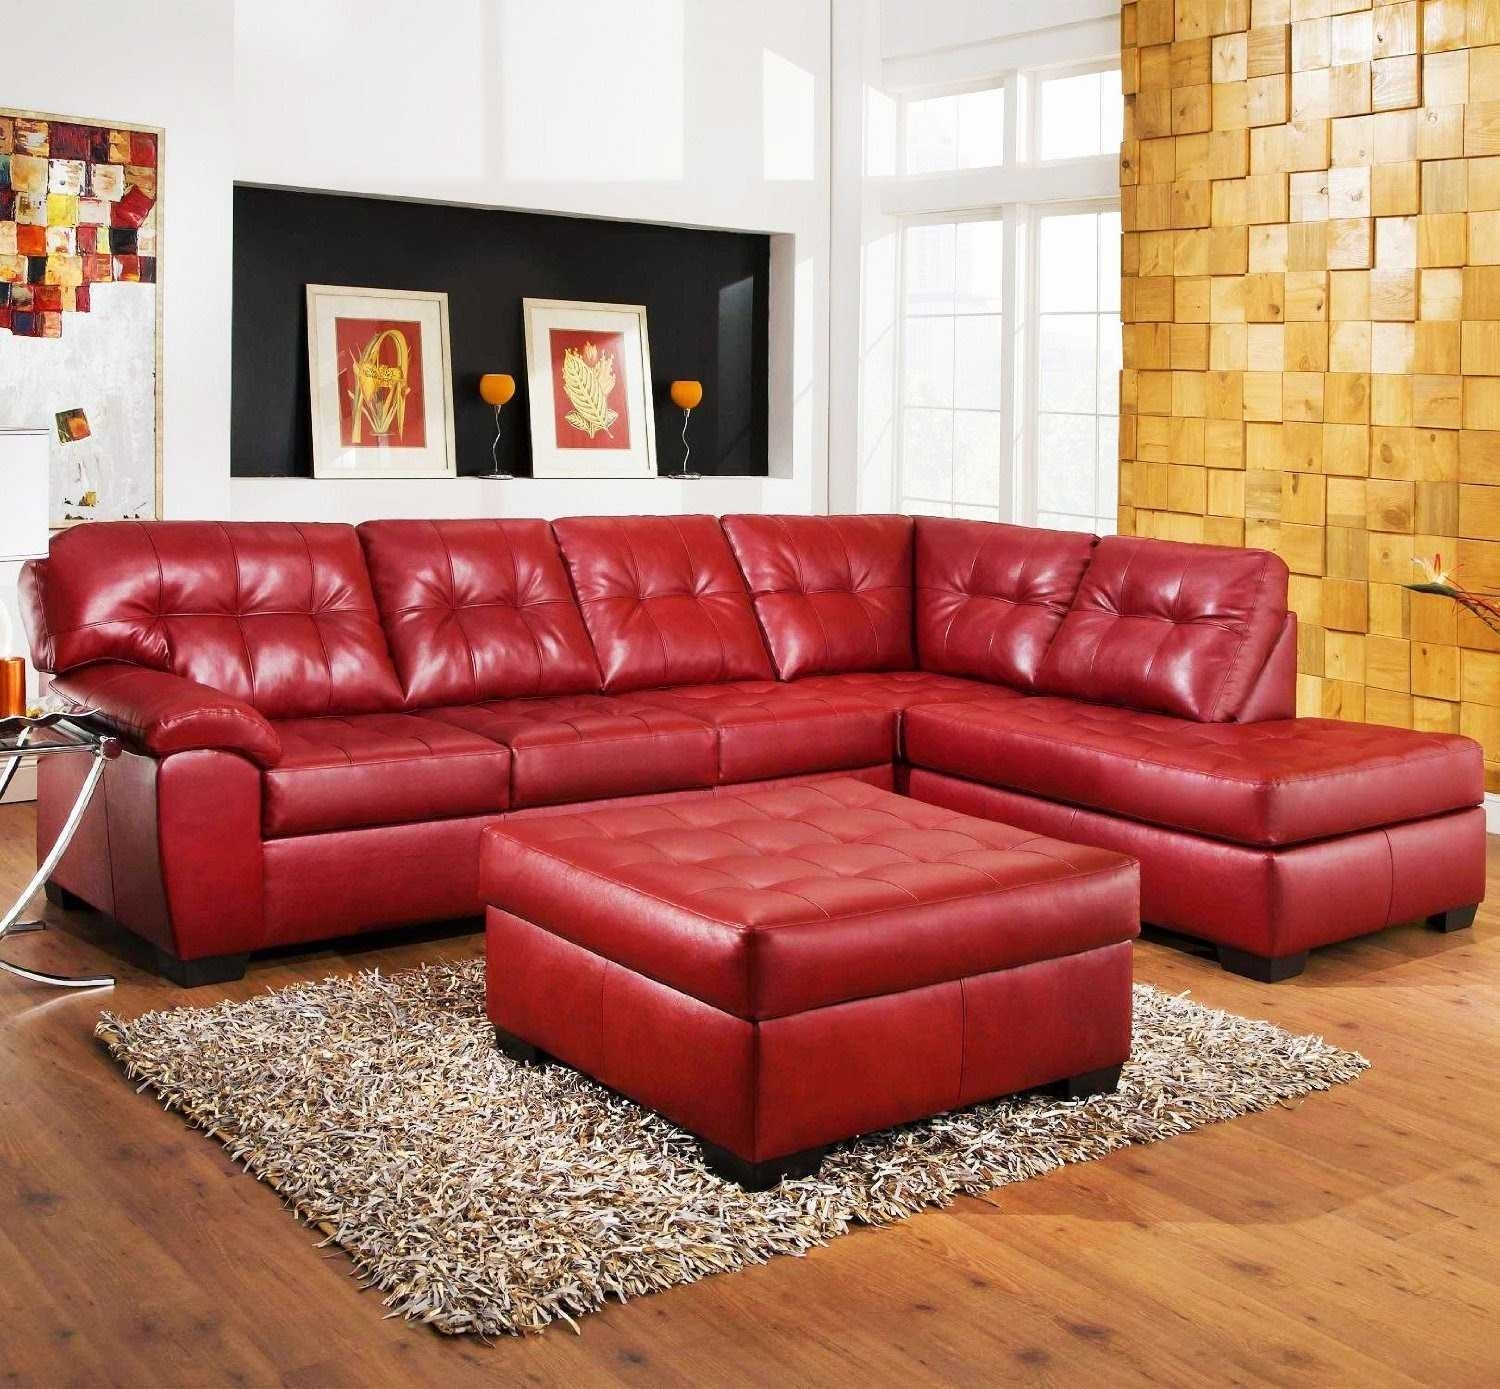 The Best Sectional Sofas Rooms Go And Ideas Pics Of To Trend Popular With  Regard To